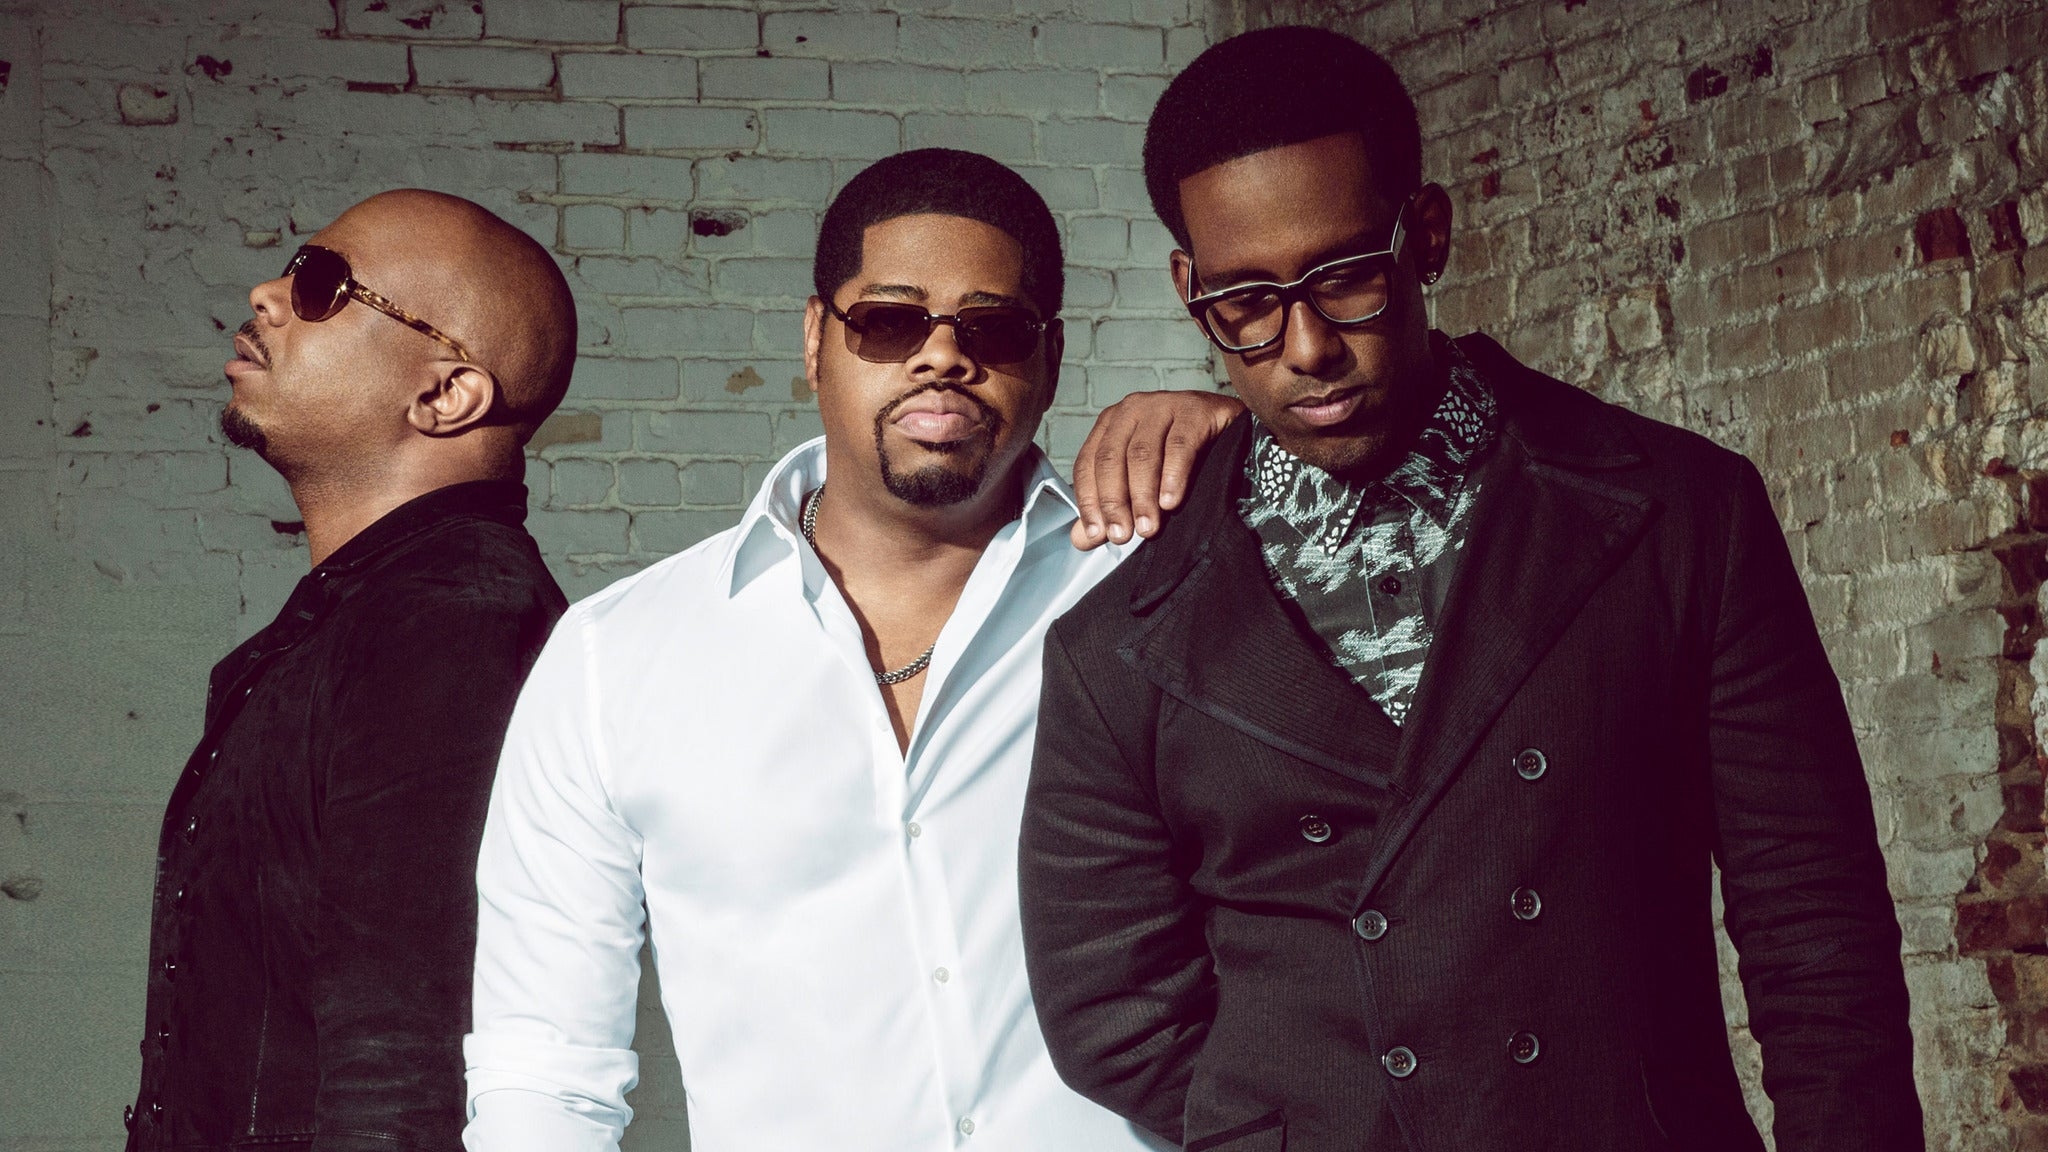 Boyz II Men at Freeman Stage